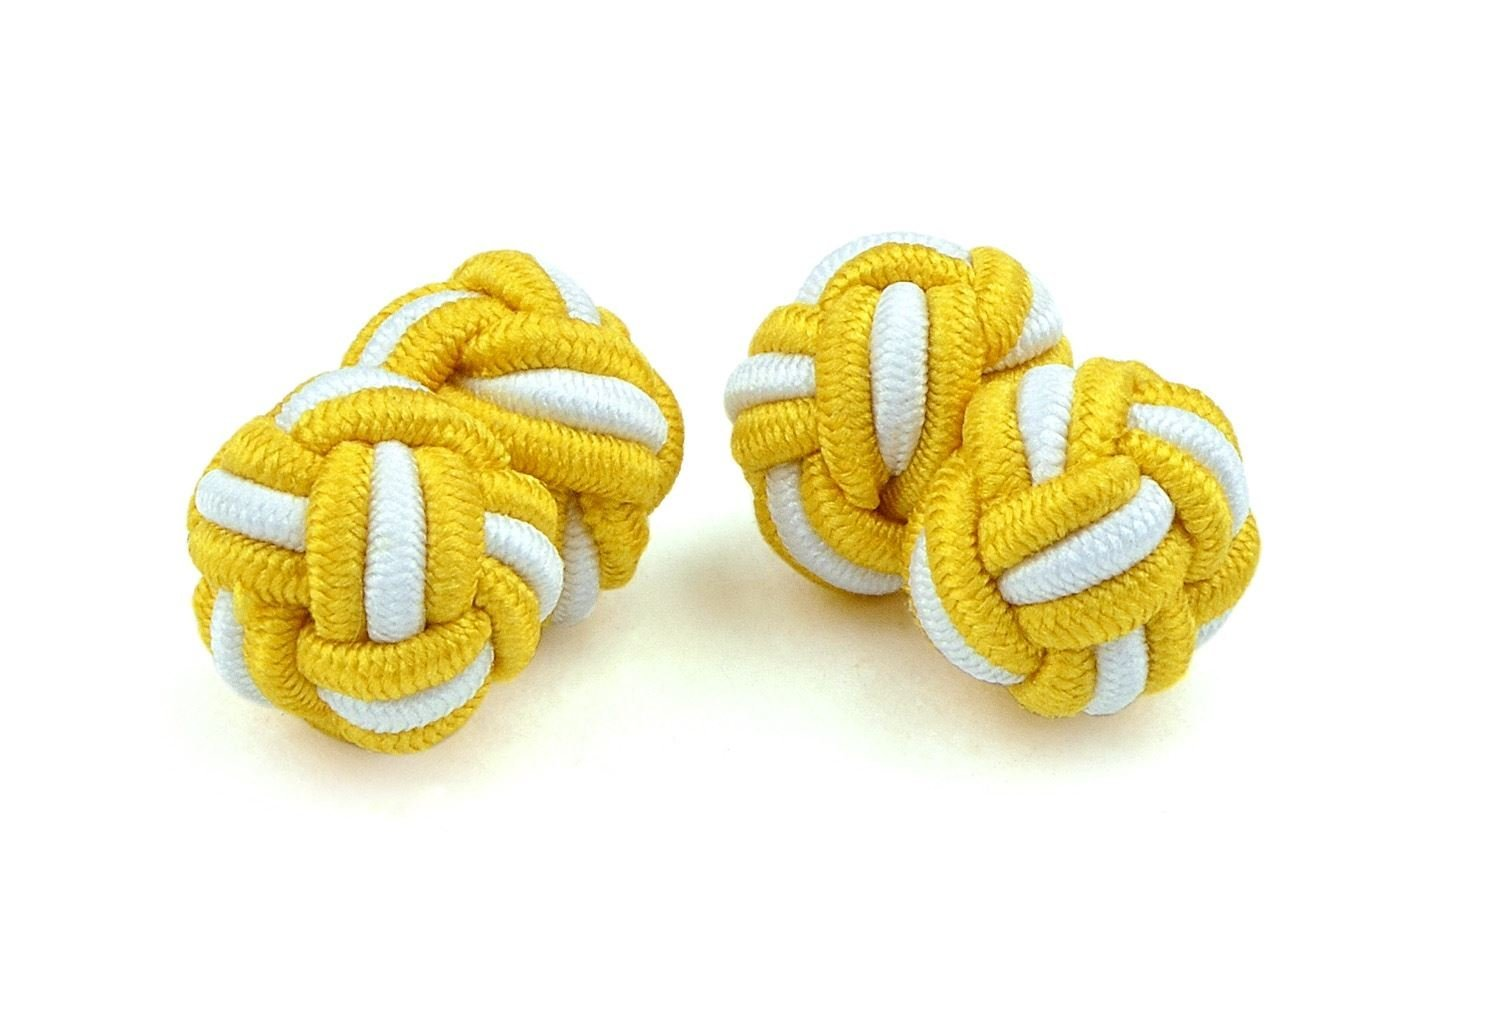 Moda Di Raza- Mens Shirt Cufflinks Silk Knot Designer Cuff links French Cuffs - Gold